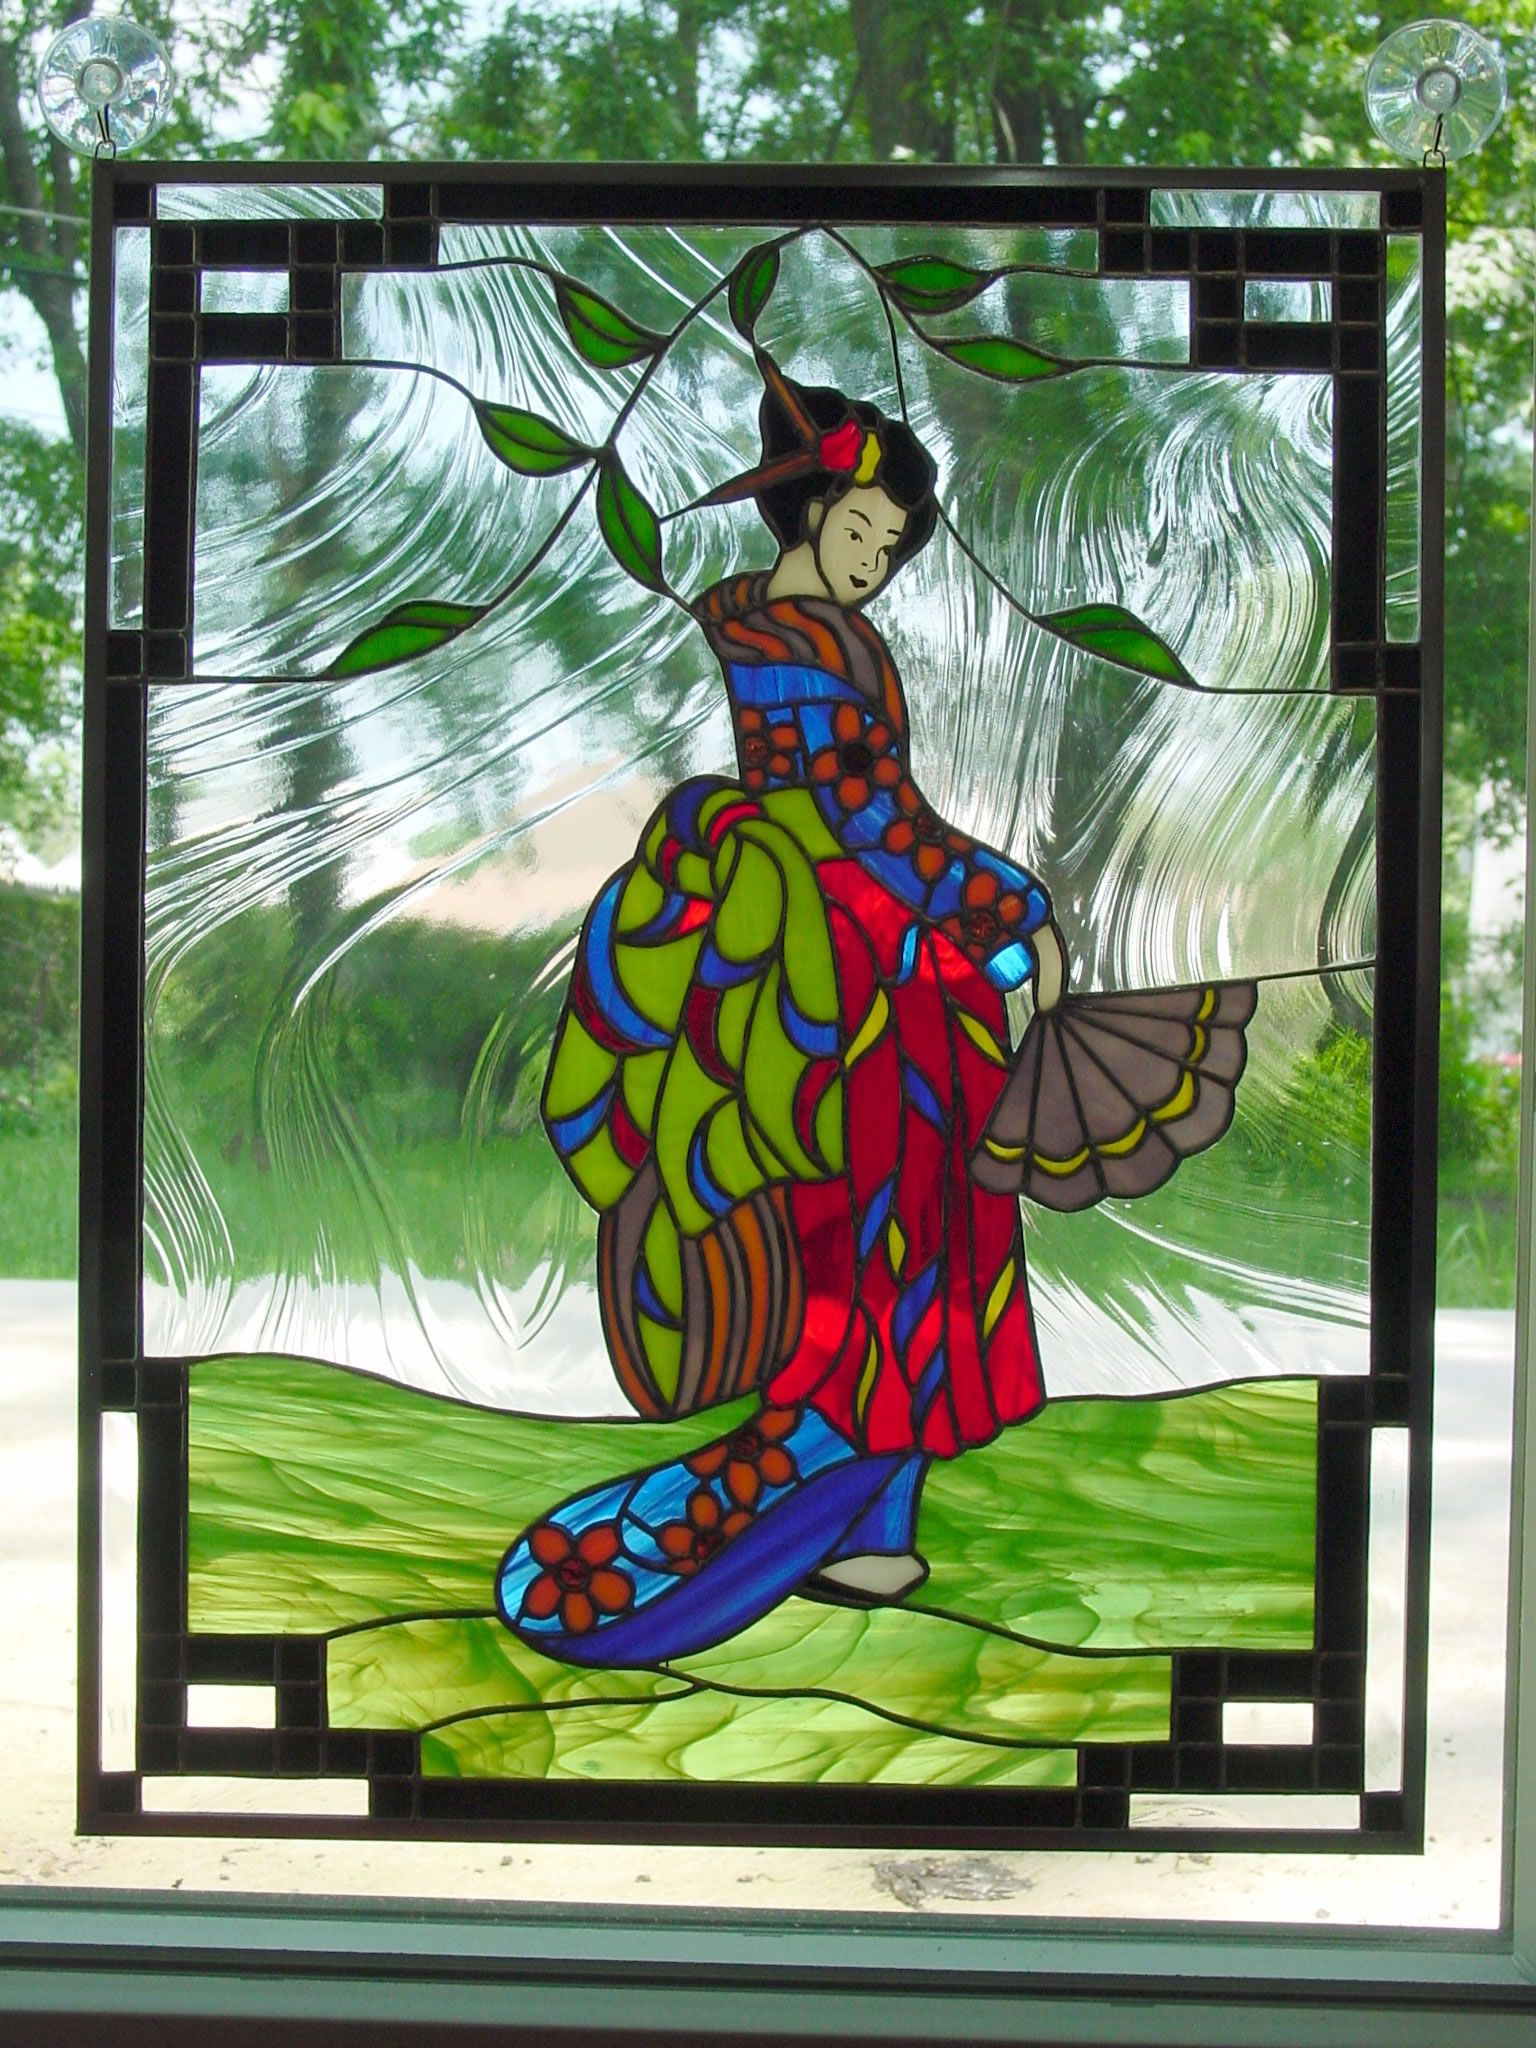 Beach theme decoration stained glass window panels arts crafts - Decorative Panels Kim S Geisha Jpg Stained Glass Panelsglass Artproject